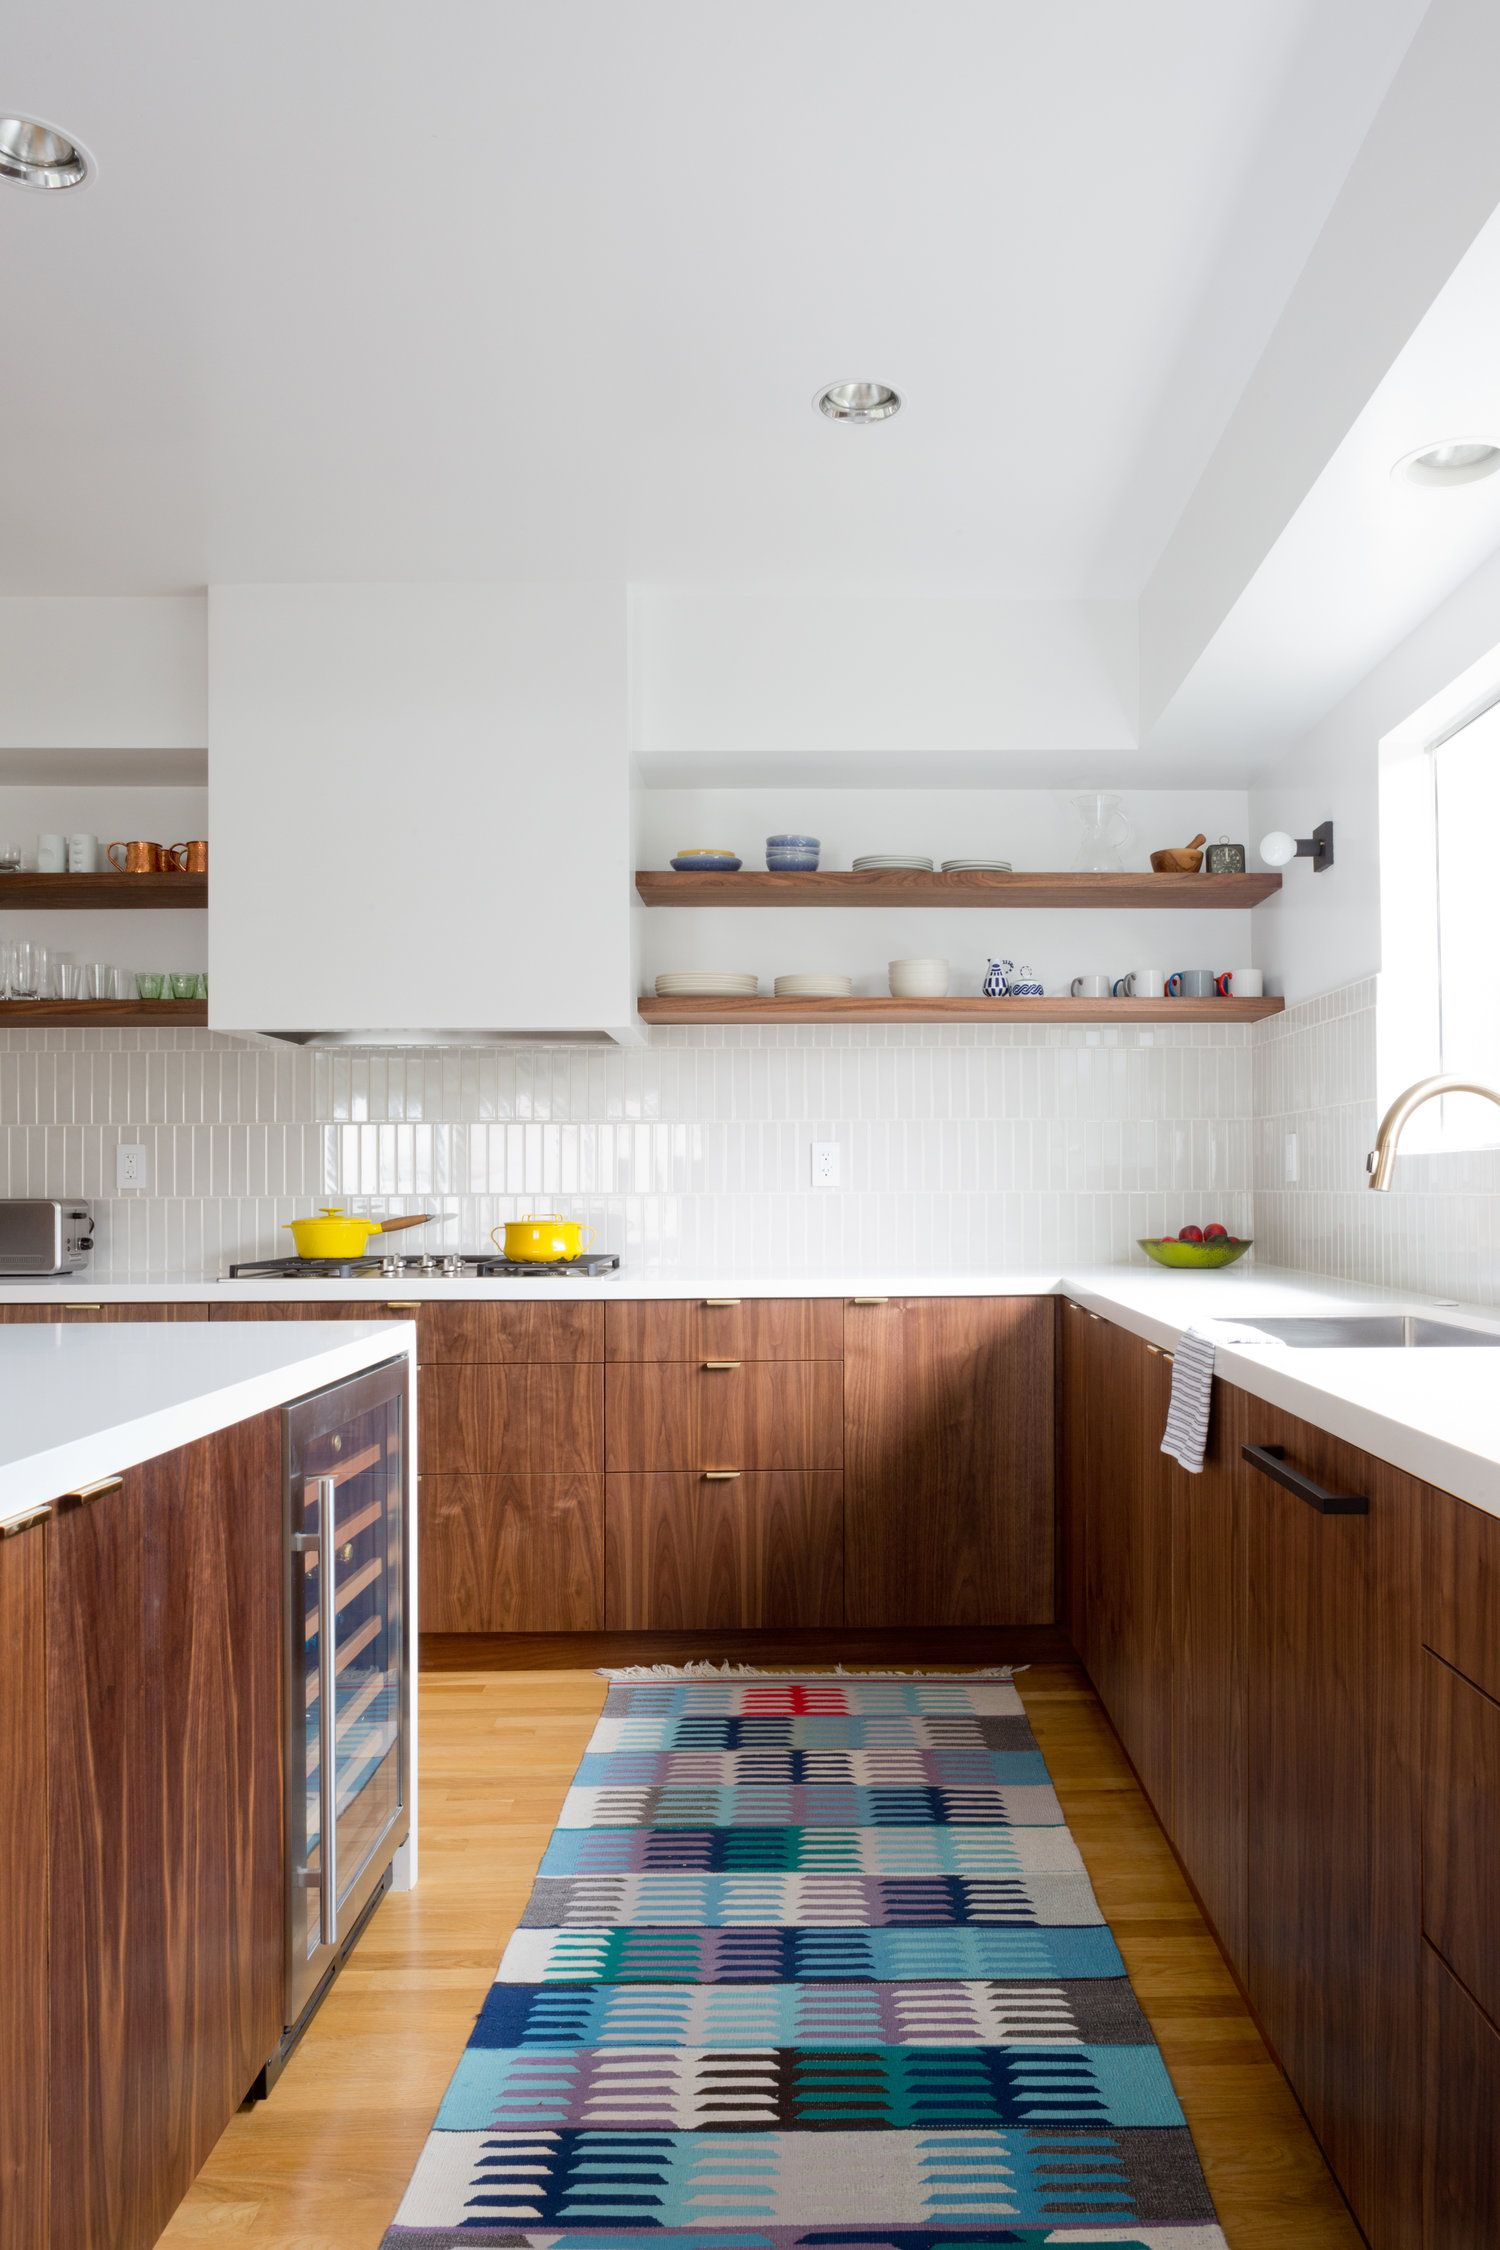 Pin by Amber Cross on fortable KITCHENS in 2018